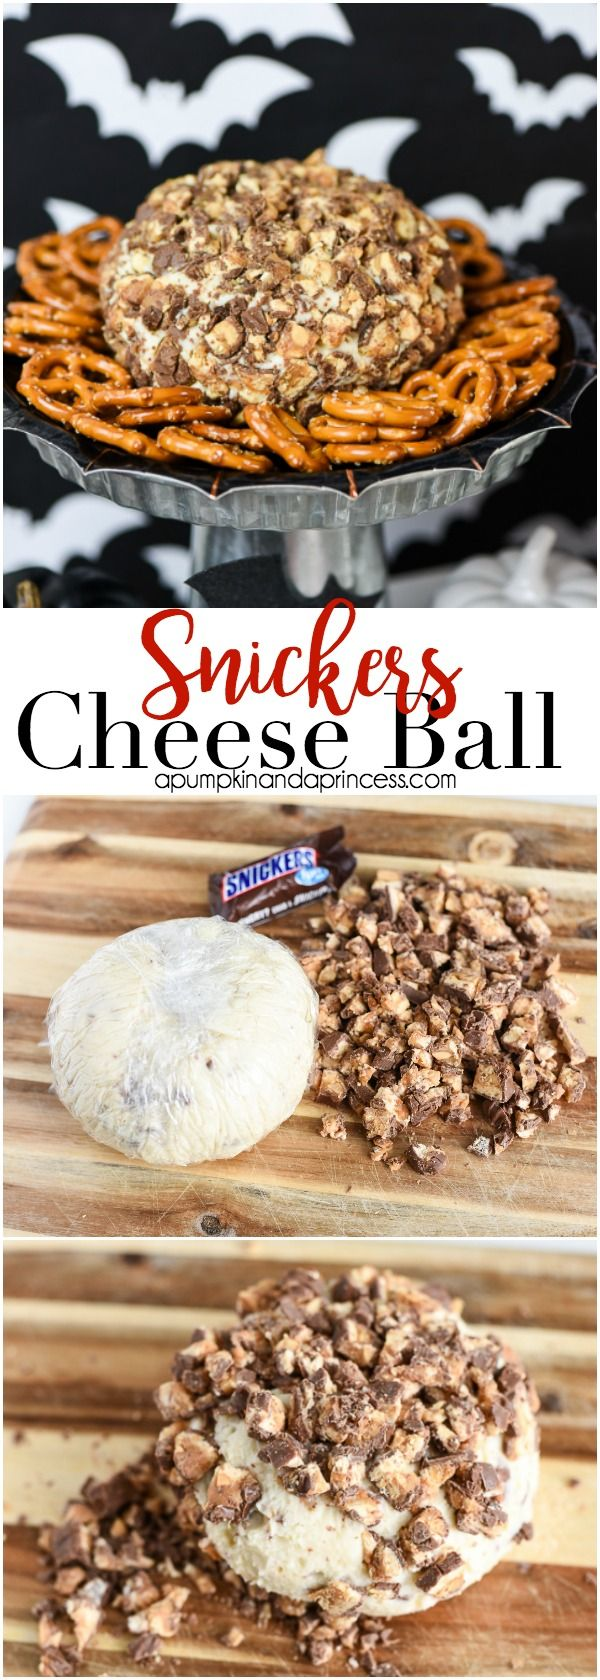 Snickers Cheese Ball Recipe